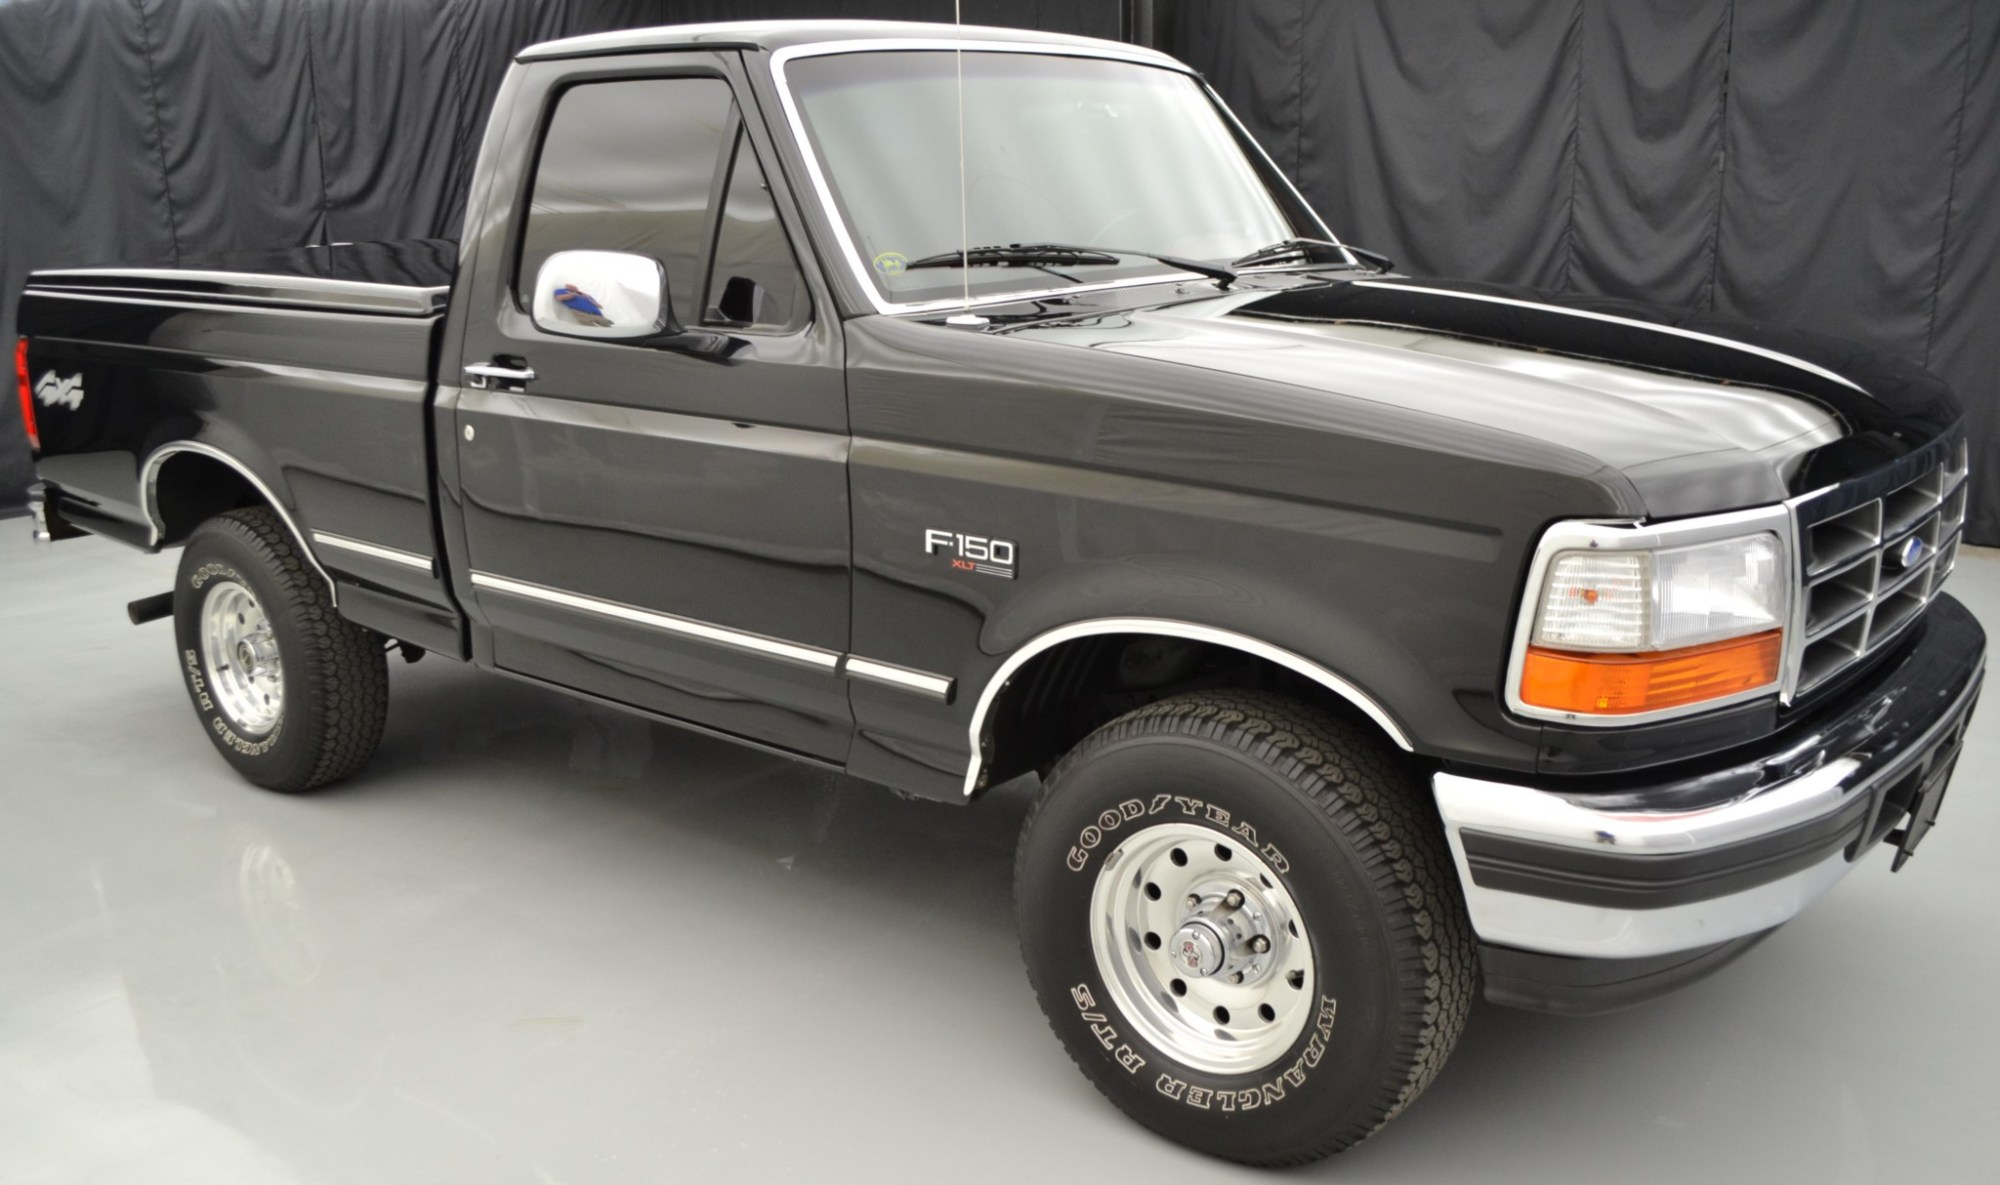 hight resolution of 33k mile 1996 ford f 150 xlt 4x4 5 speed for sale on bat auctions closed on april 10 2019 lot 17 799 bring a trailer